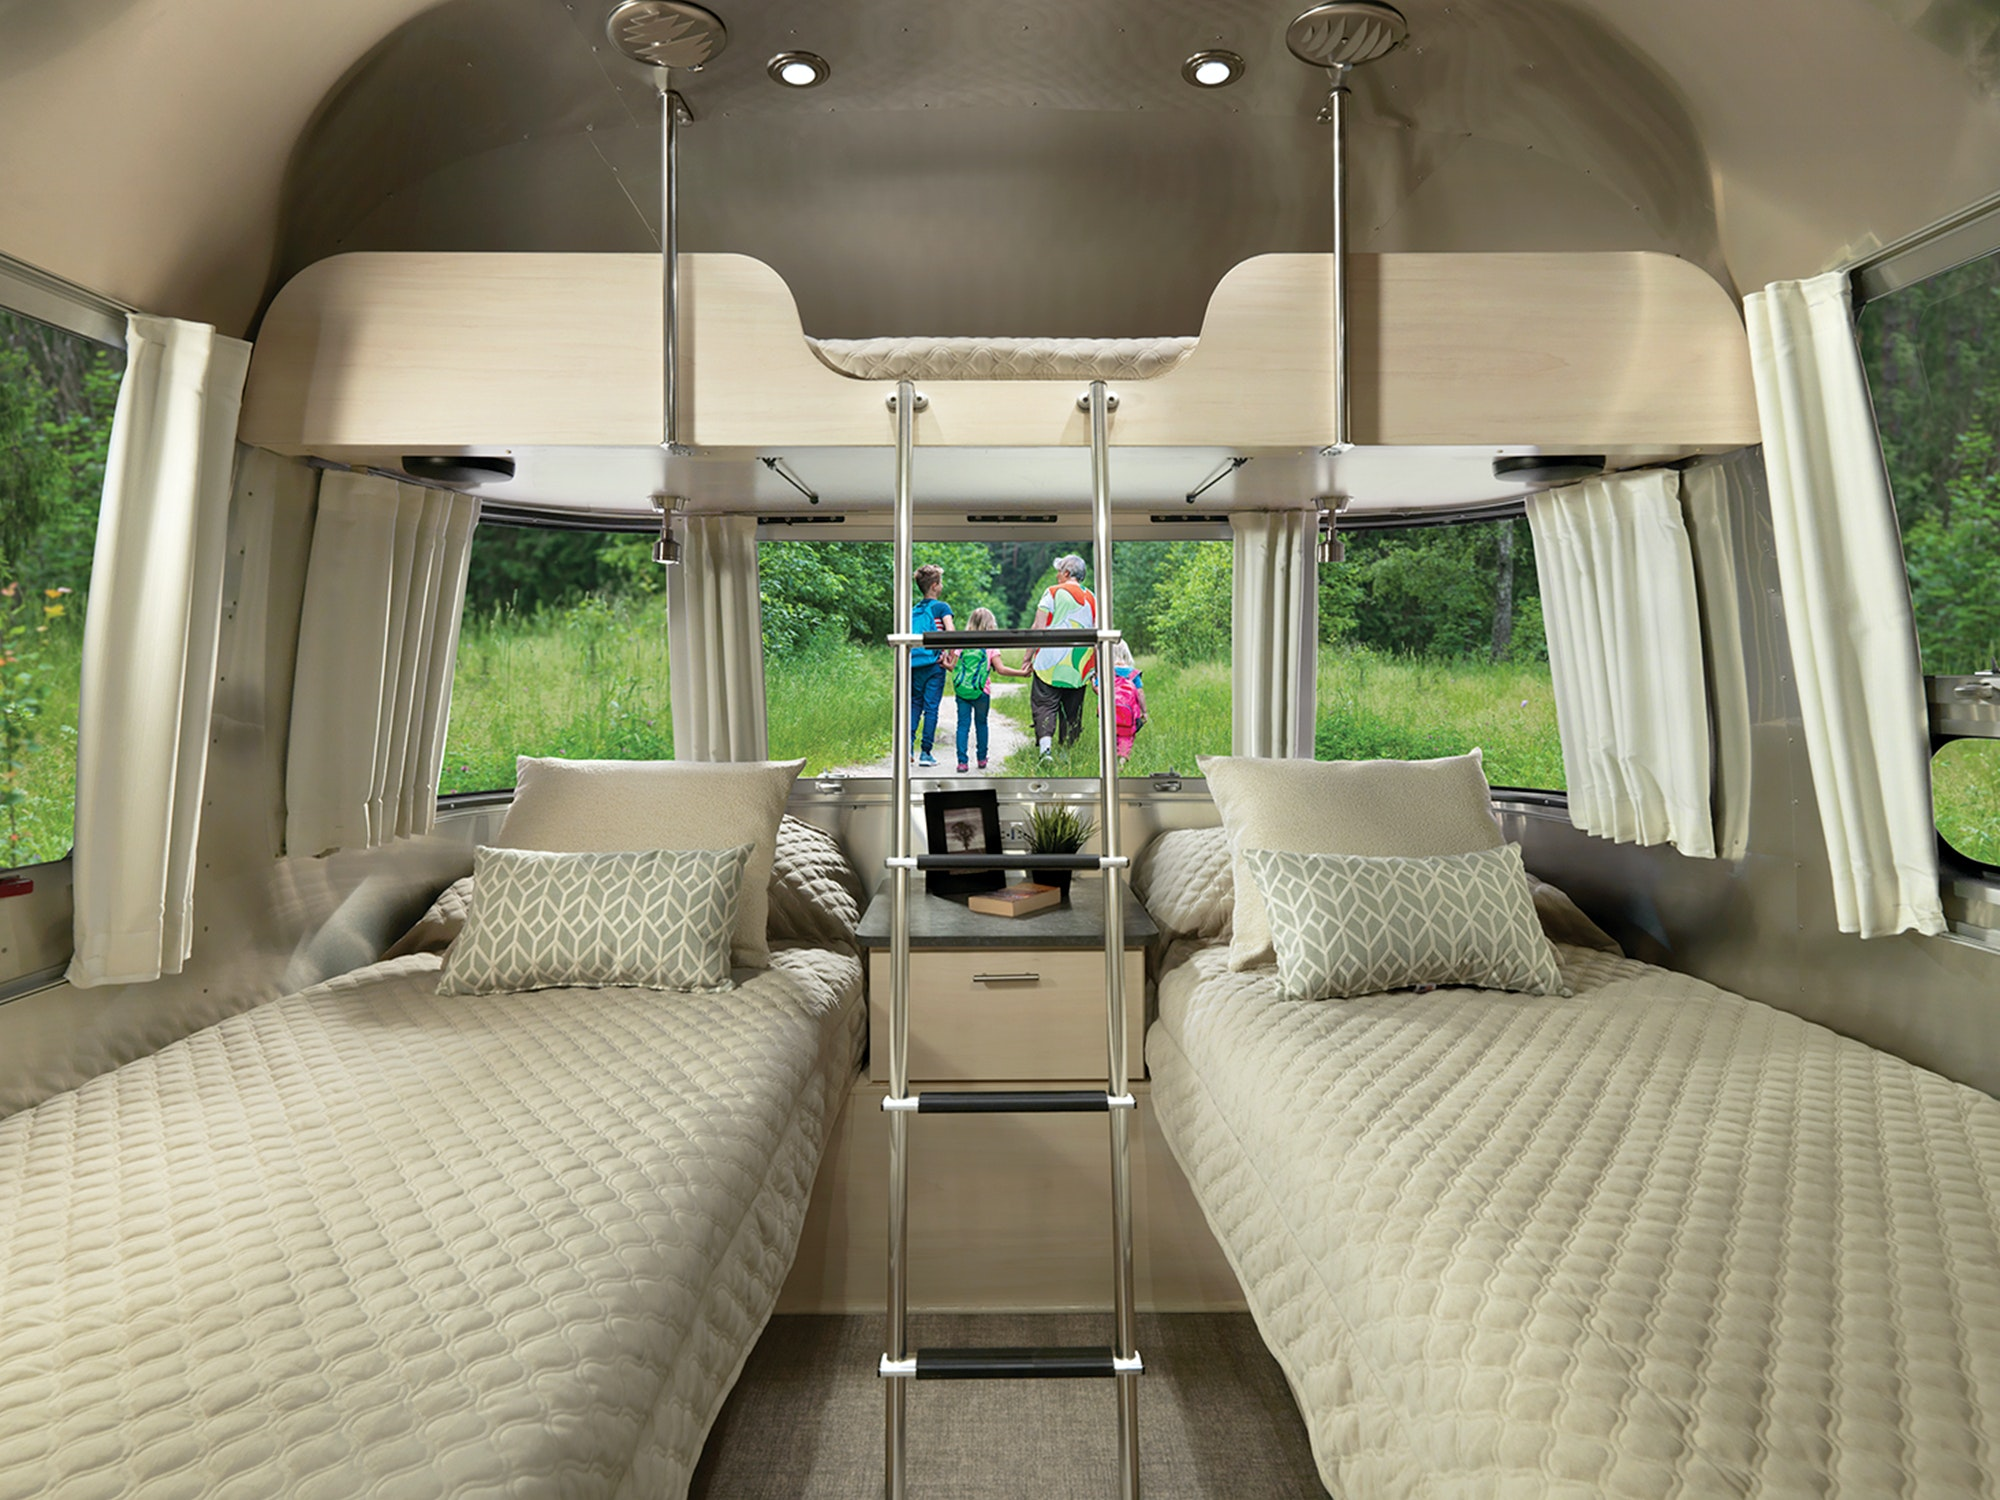 2021-Airstream-Flying-Cloud-Interior-27FB-Bunk-with-Twin-Beds